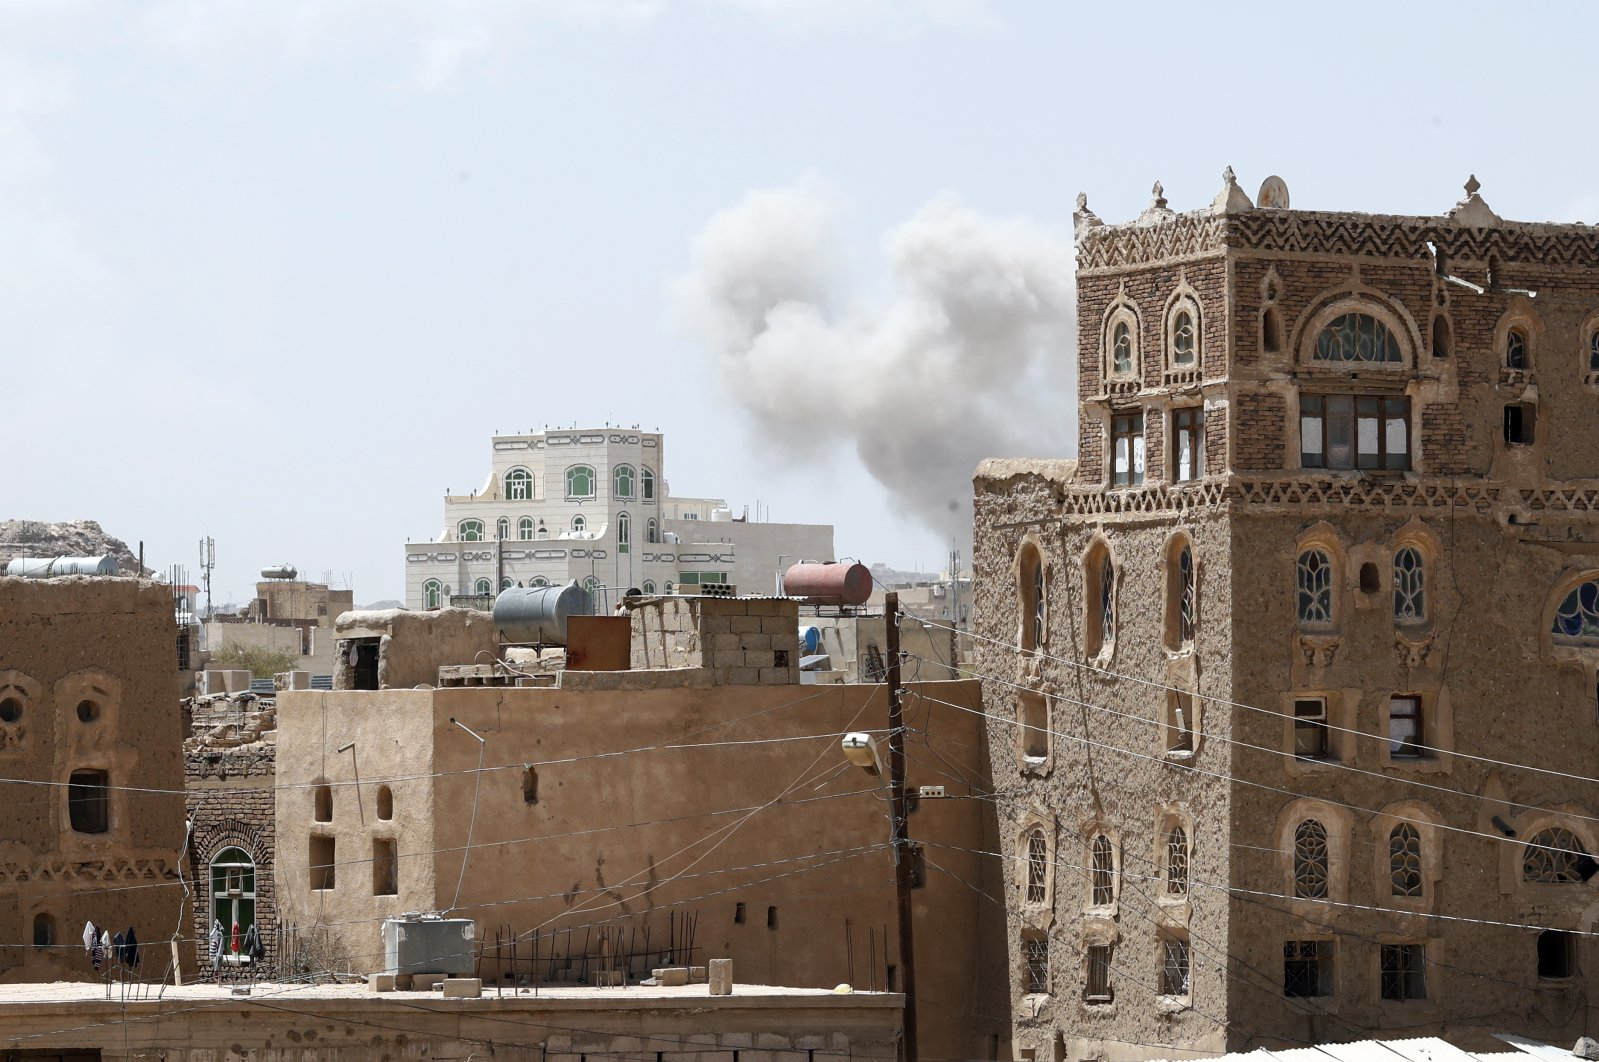 Smoke billows above a neighborhood following Saudi-led airstrikes targeting a Houthi-held position, a day after the Houthis fired ballistic missiles at the Saudi capital Riyadh, Sanaa, Yemen, March 30, 2020. (EPA Photo)